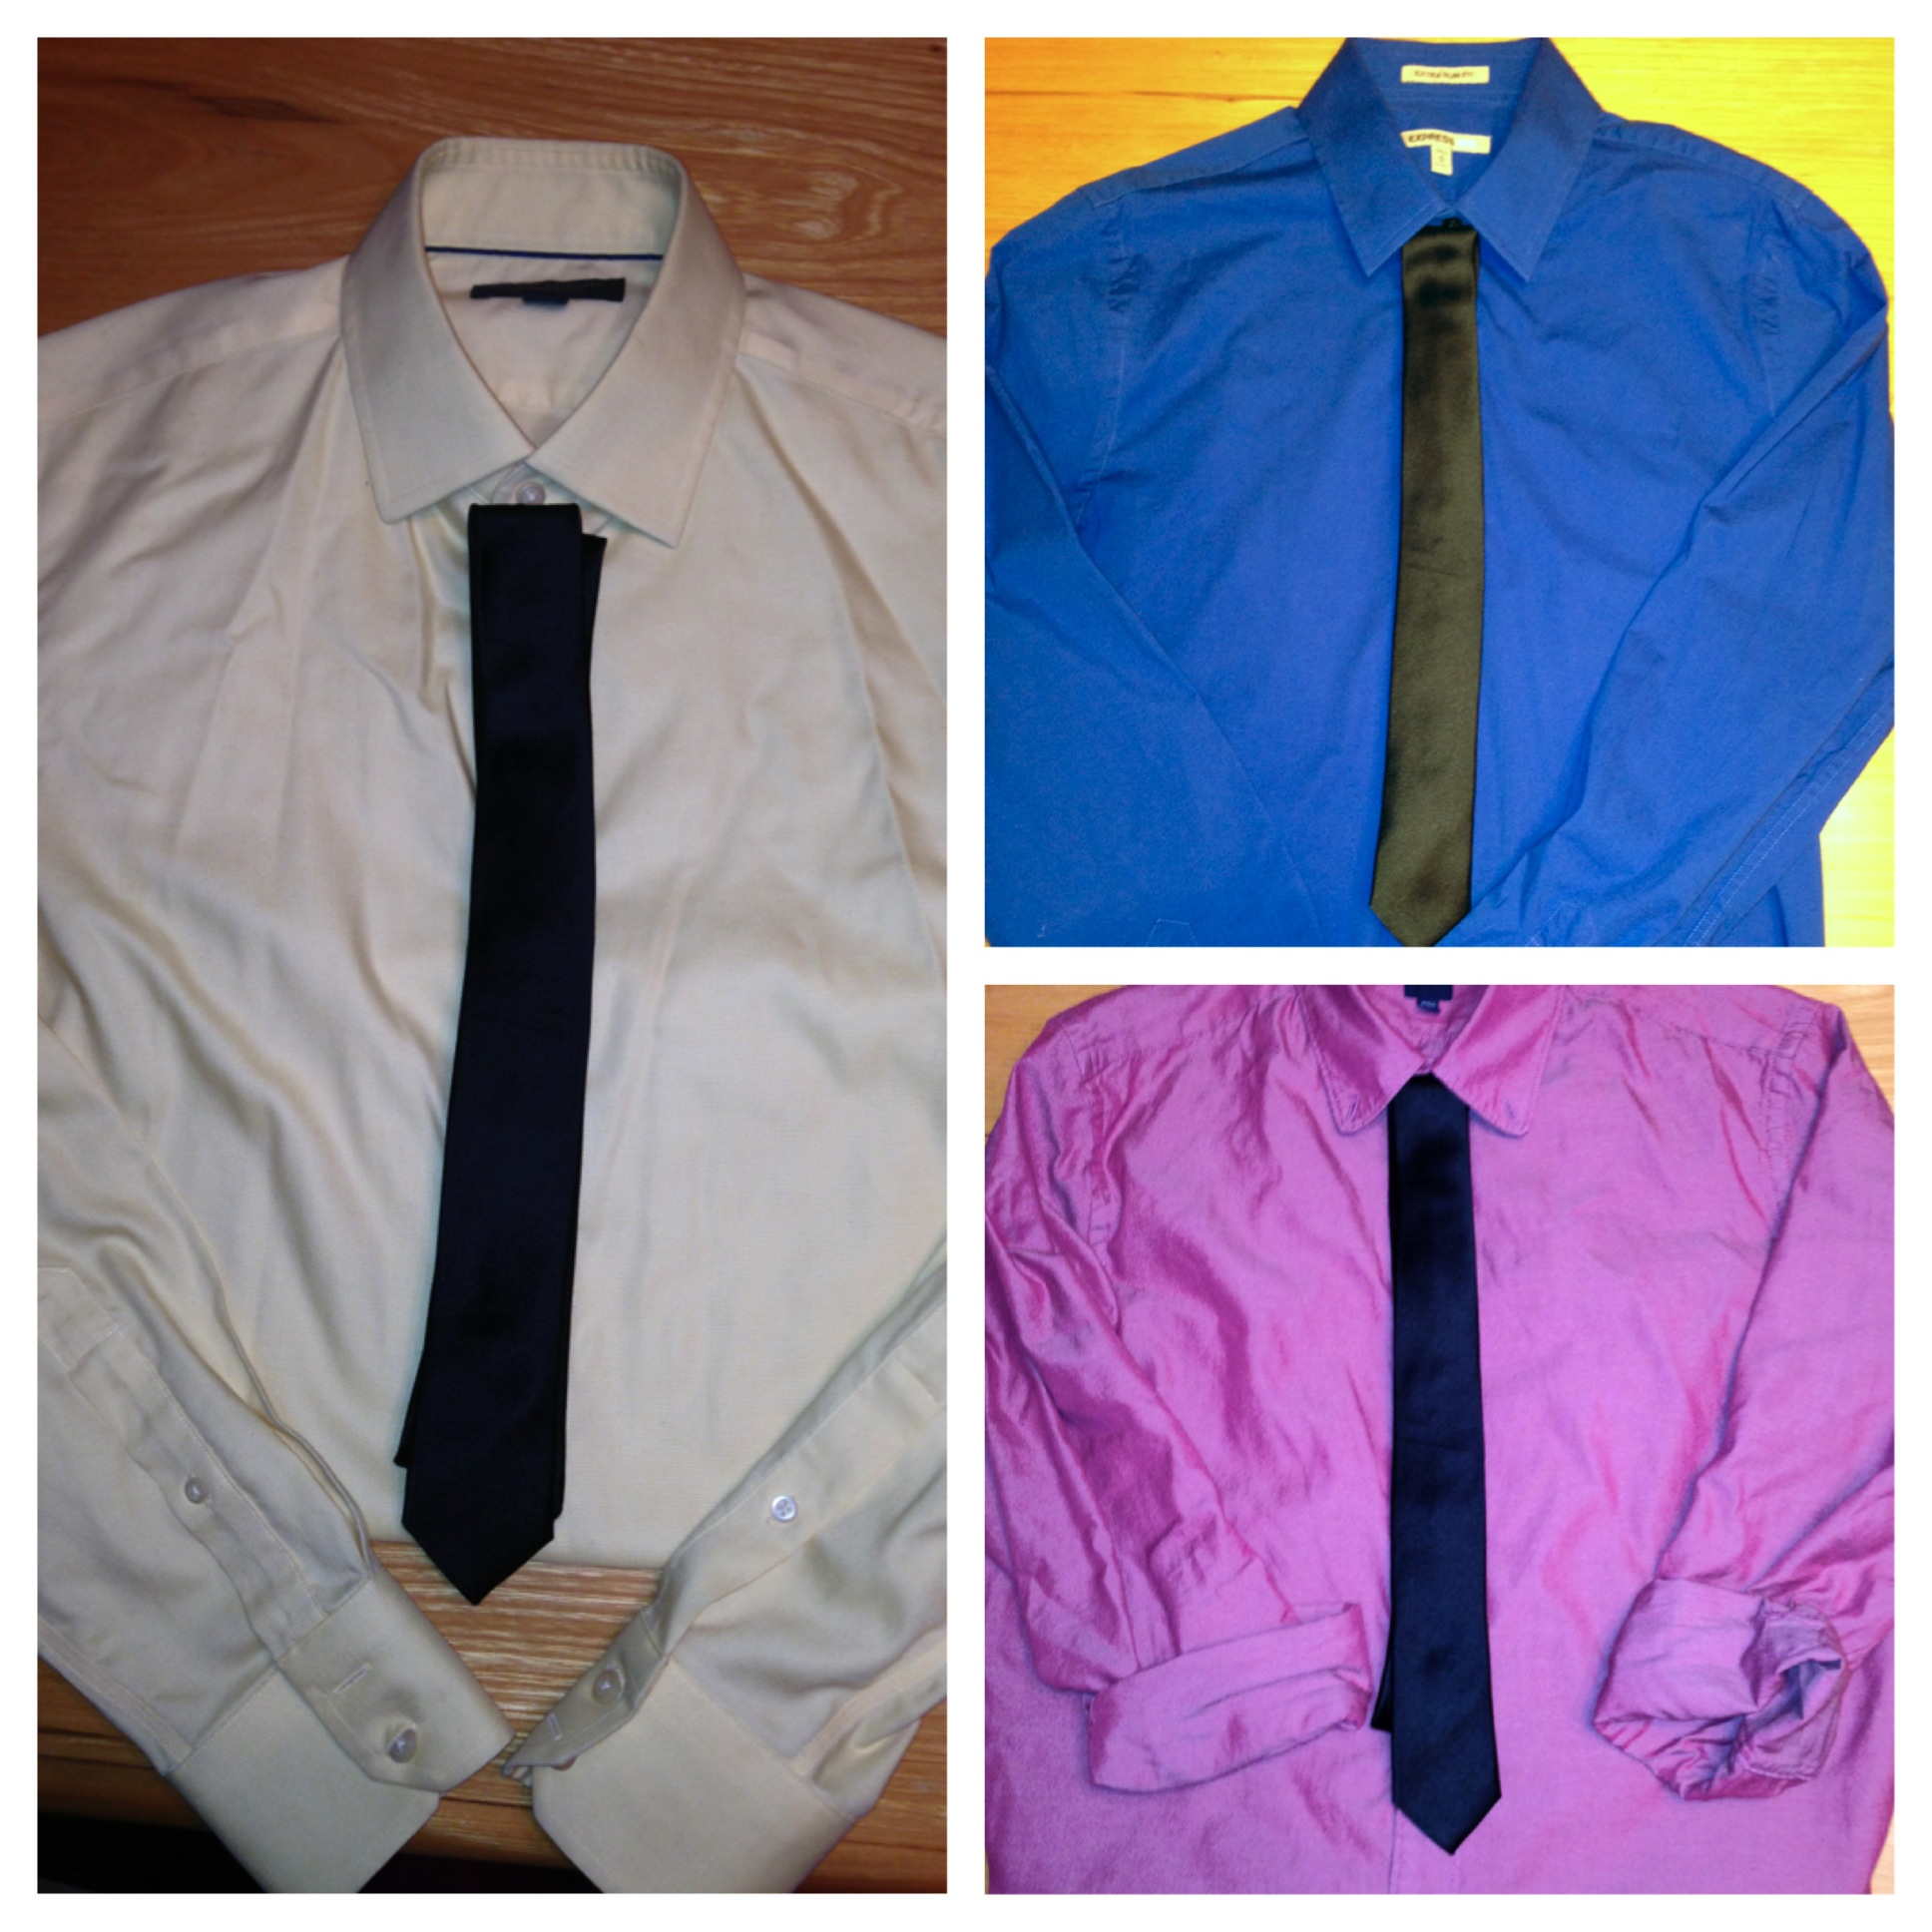 Shirts and ties it s a match part 1 boots and bowties for Matching ties with shirts